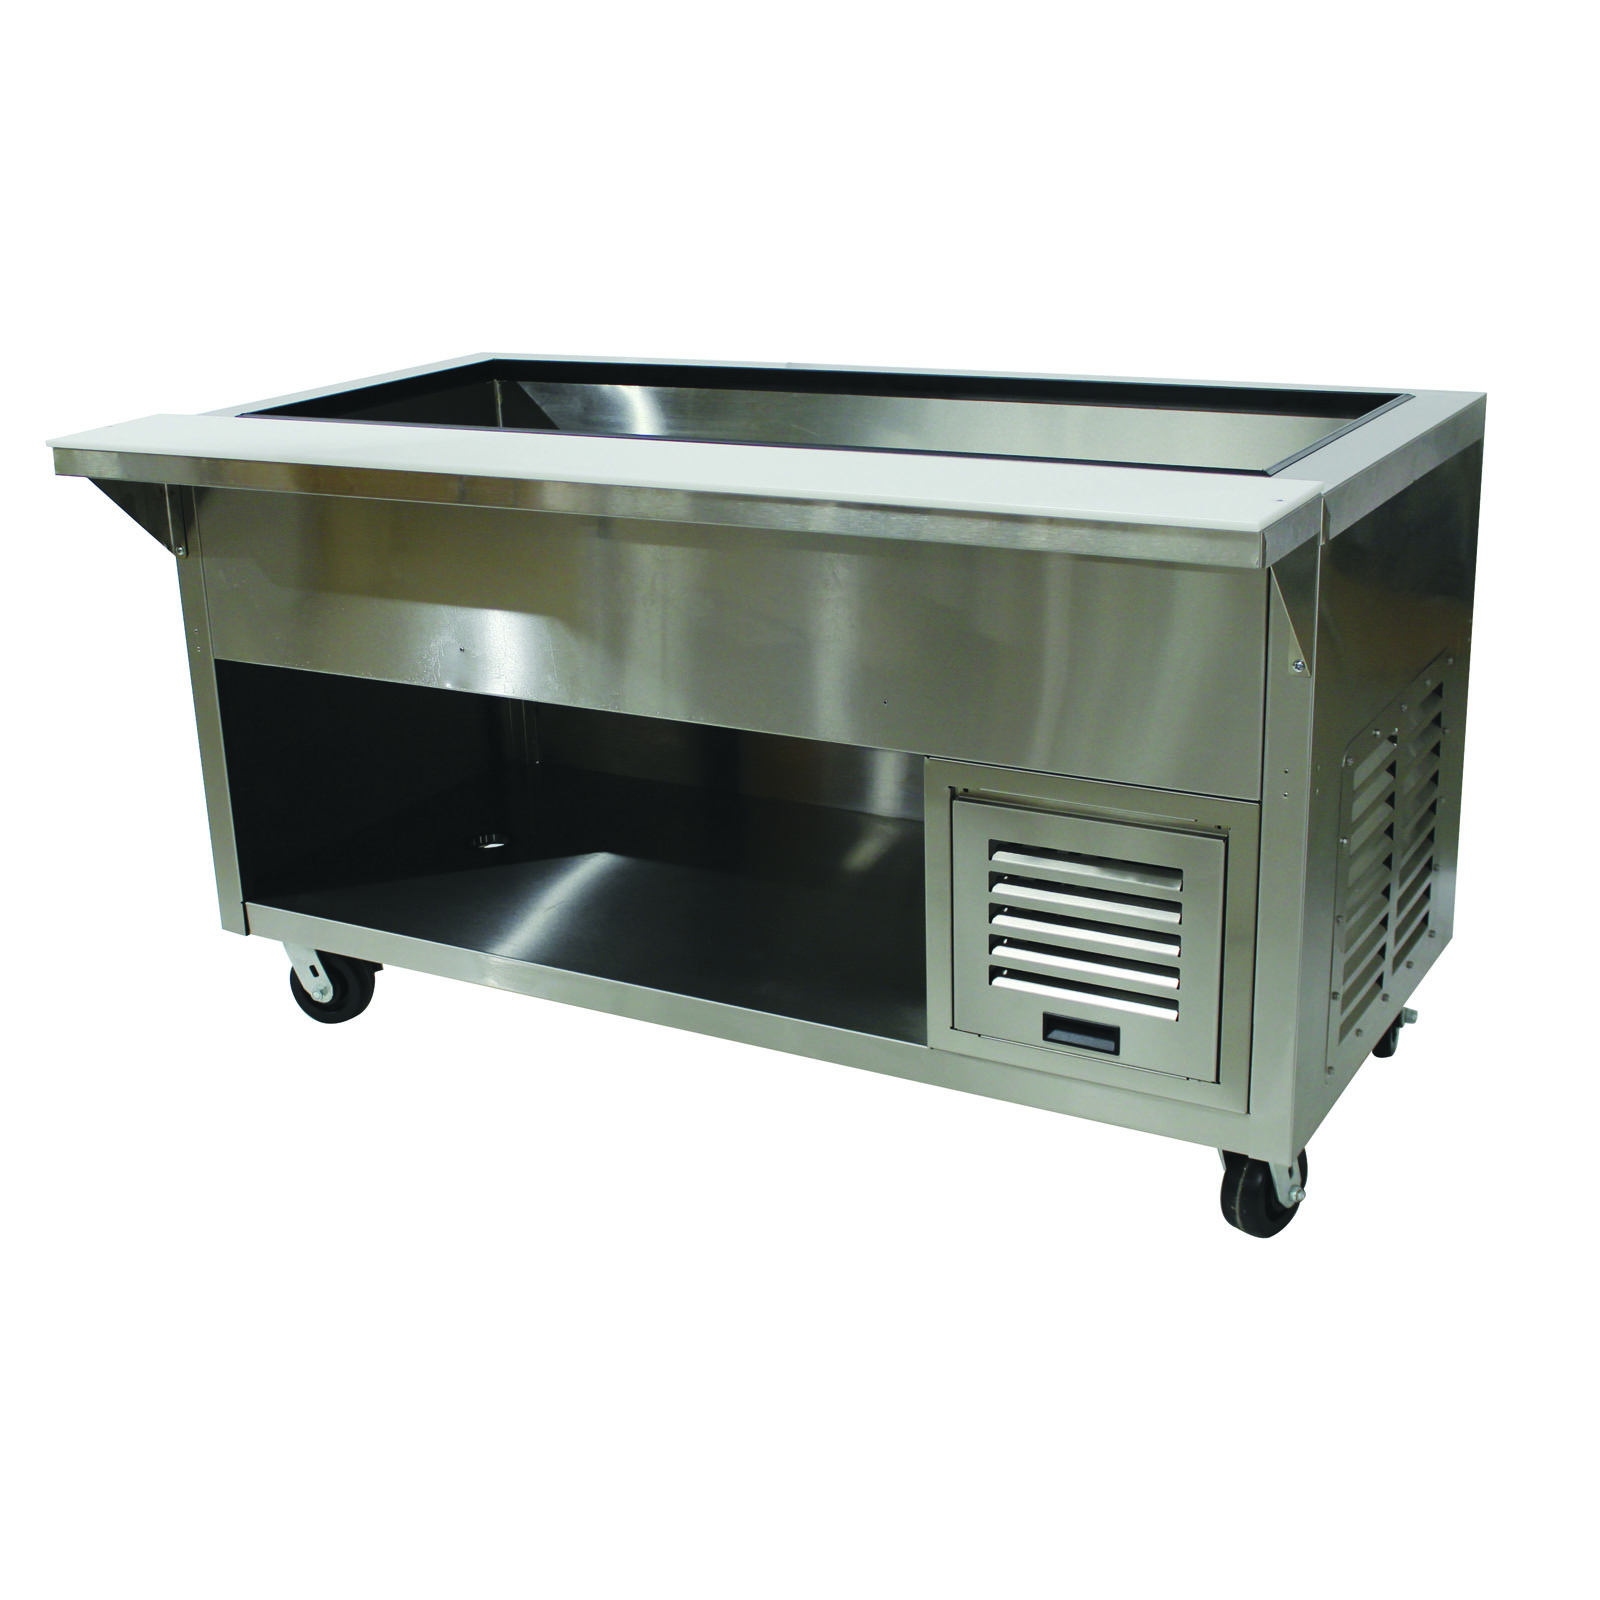 Advance Tabco HDRCP-5-BS serving counter, cold food